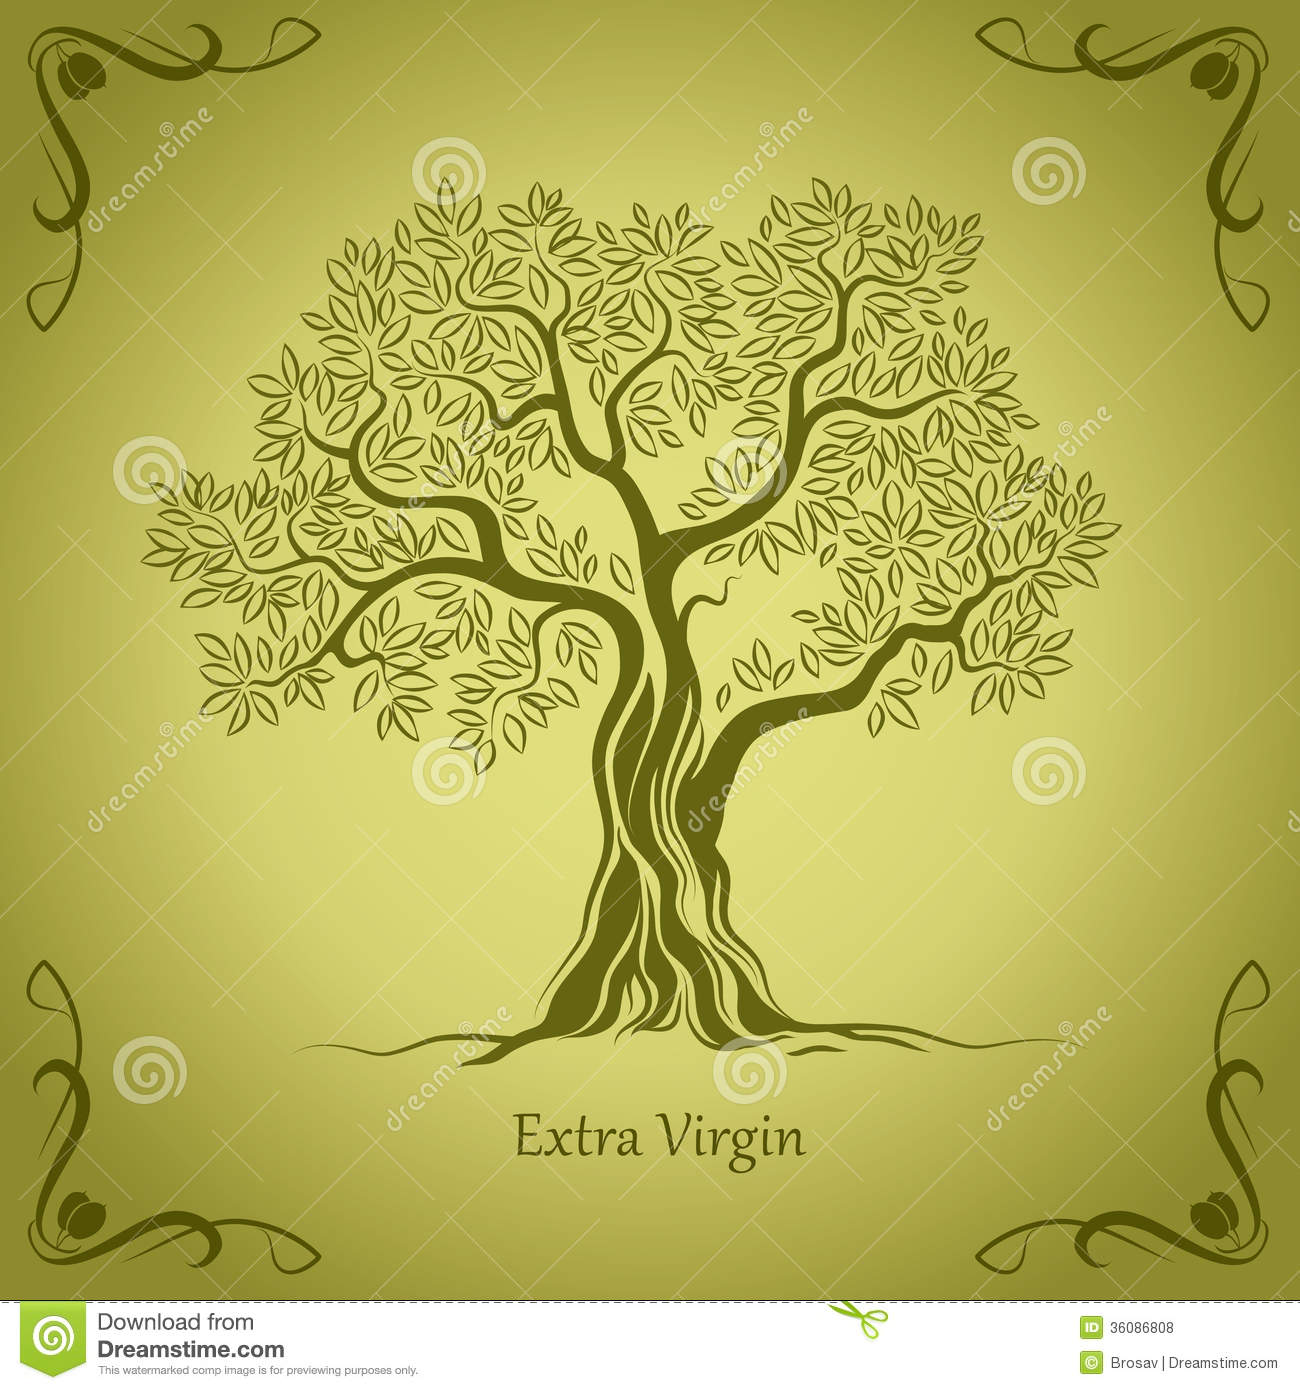 Trees are green gold essay